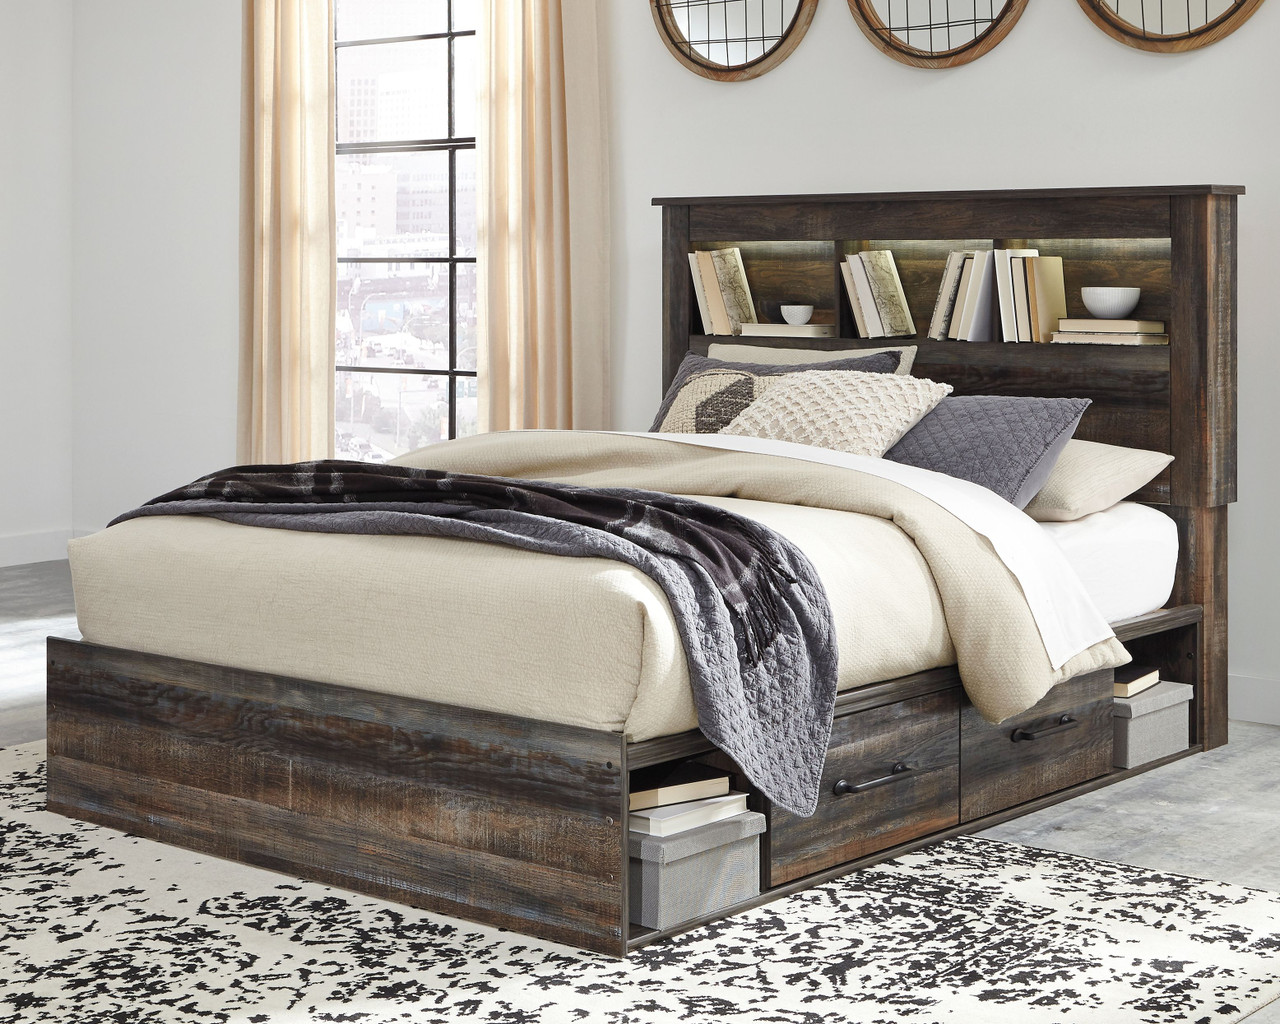 Ashley Drystan Multi Queen Bookcase Bed With Under Bed Storage On Sale At Lakeland Furniture Mattress Serving Antigo Minocqua And Rhinelander Wi